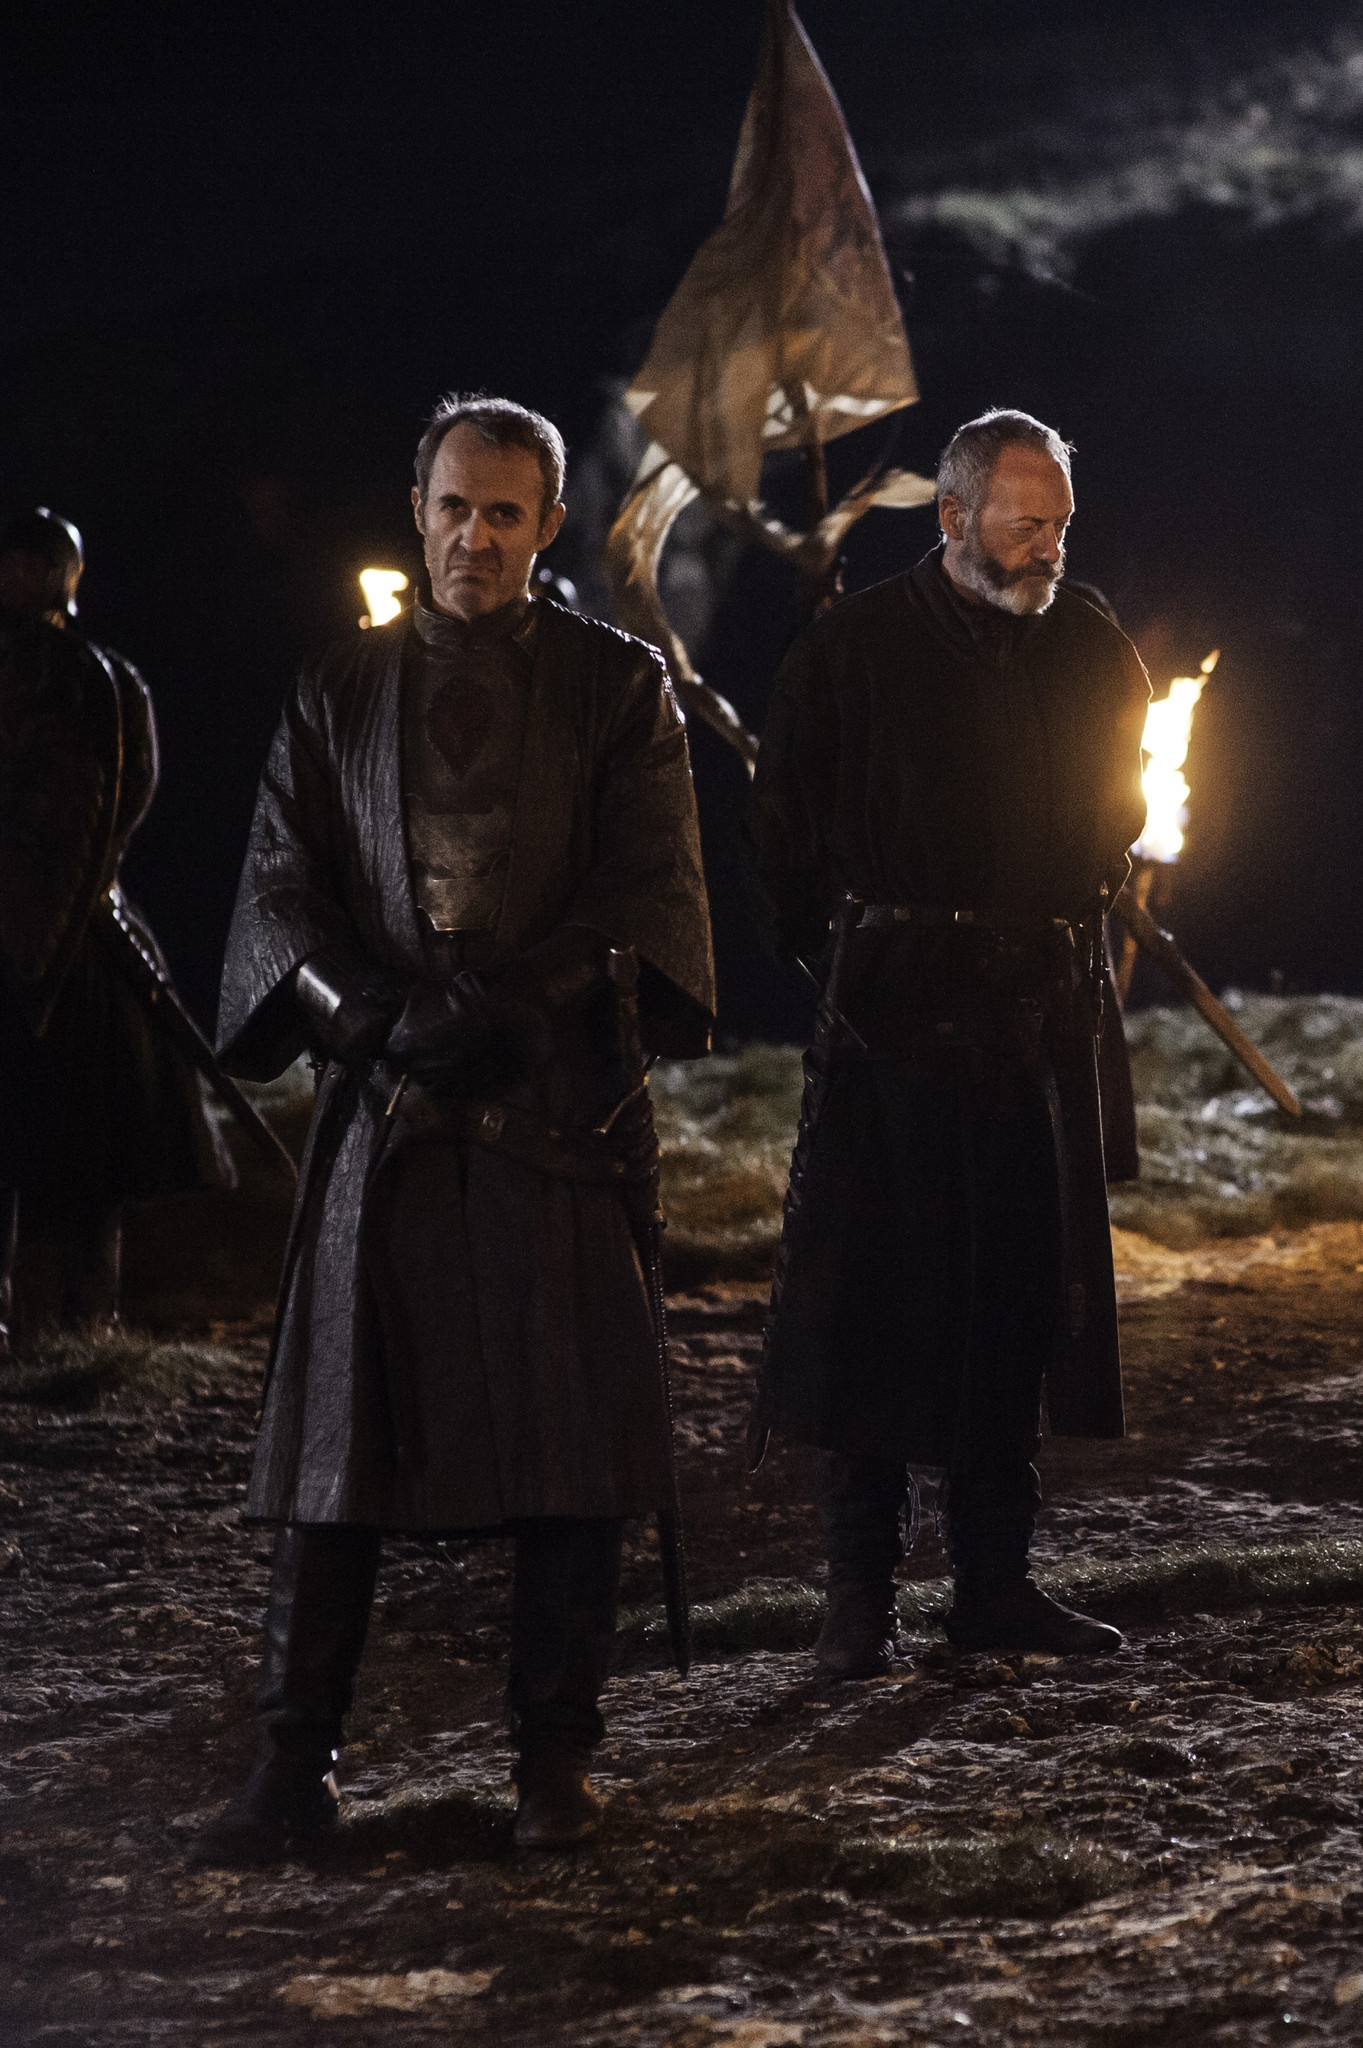 Il trono di spade: Stephen Dillane e Liam Cunningham nell'episodio The Lion and the Rose